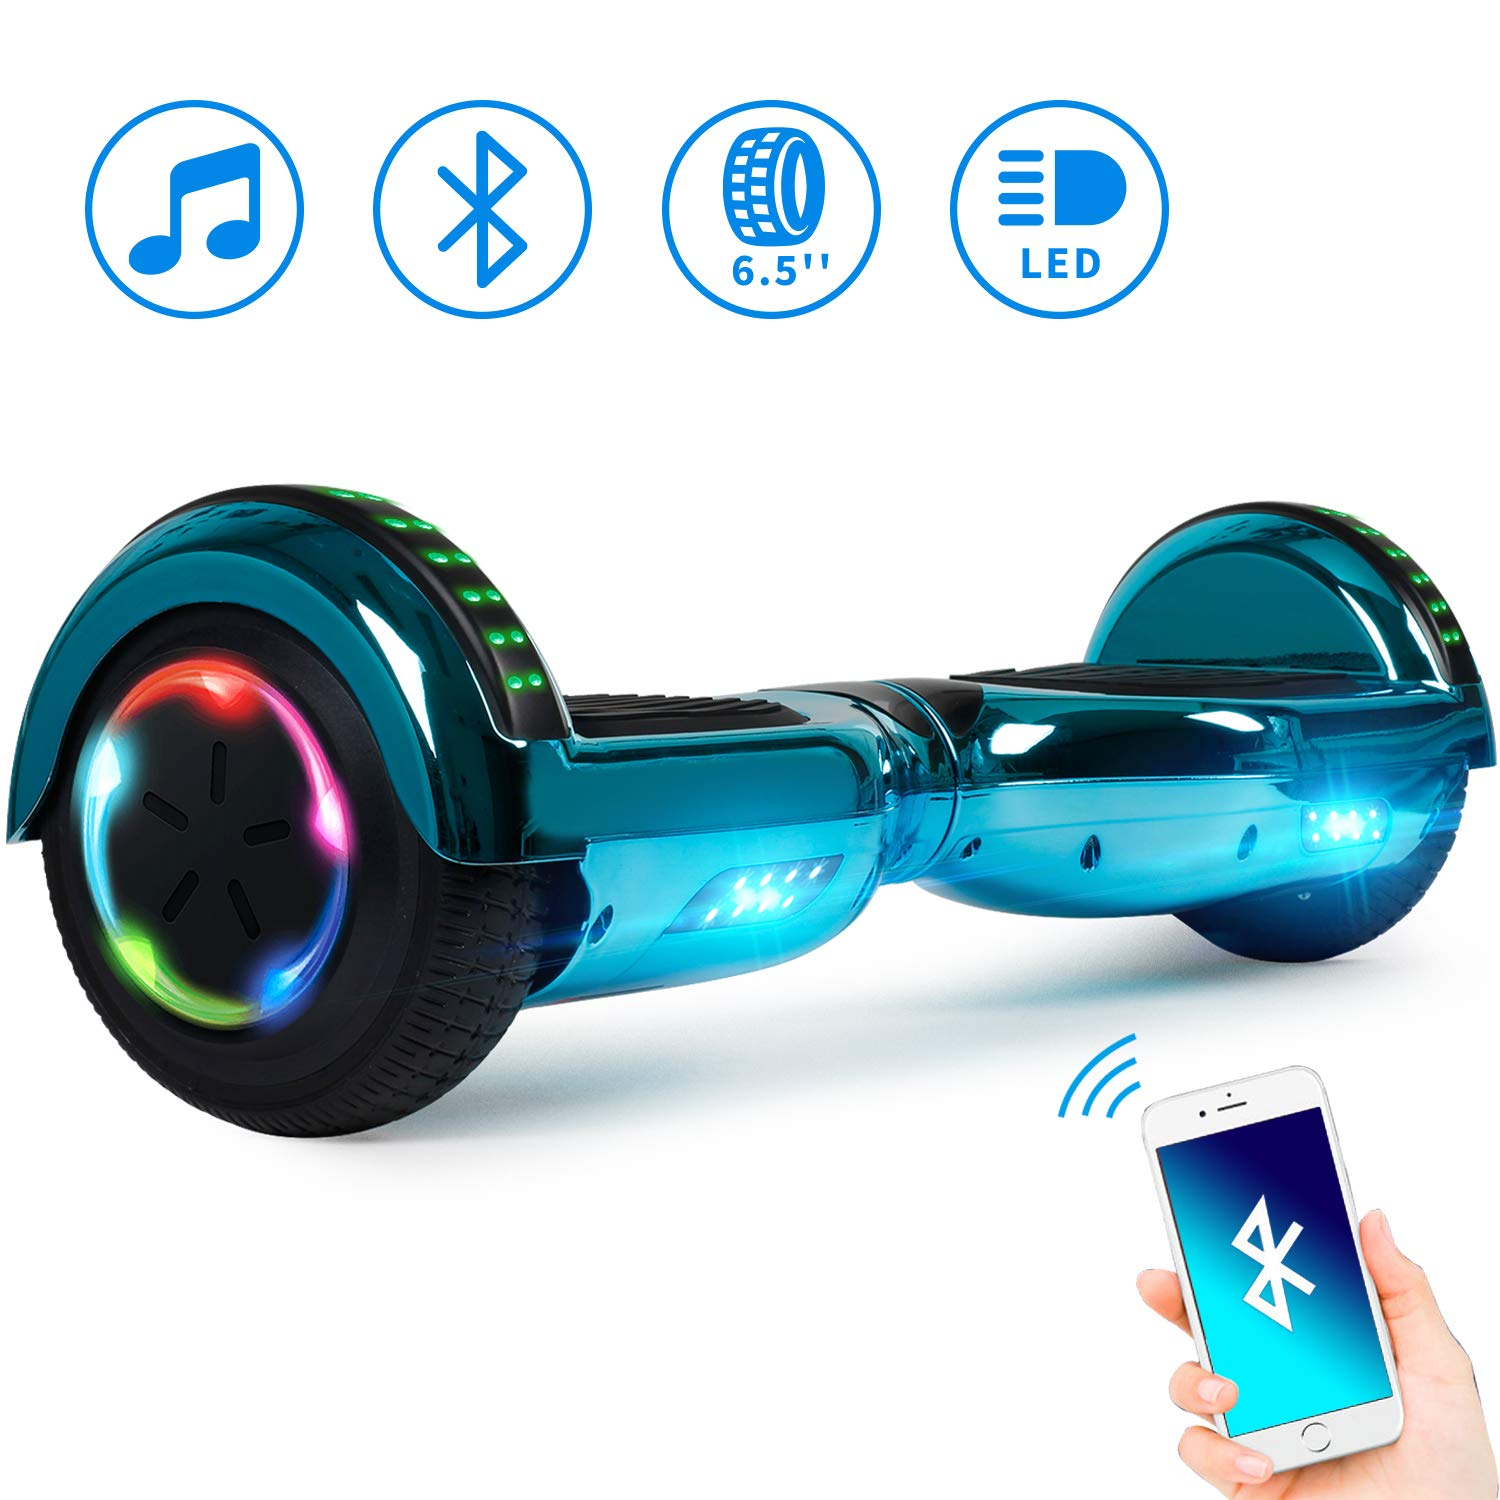 Spadger Hoverboard, 6.5 Self Balancing Hoverboard with Bluetooth and Lights- UL2272 Certified Hover Board Electric Scooter for Kids Adult